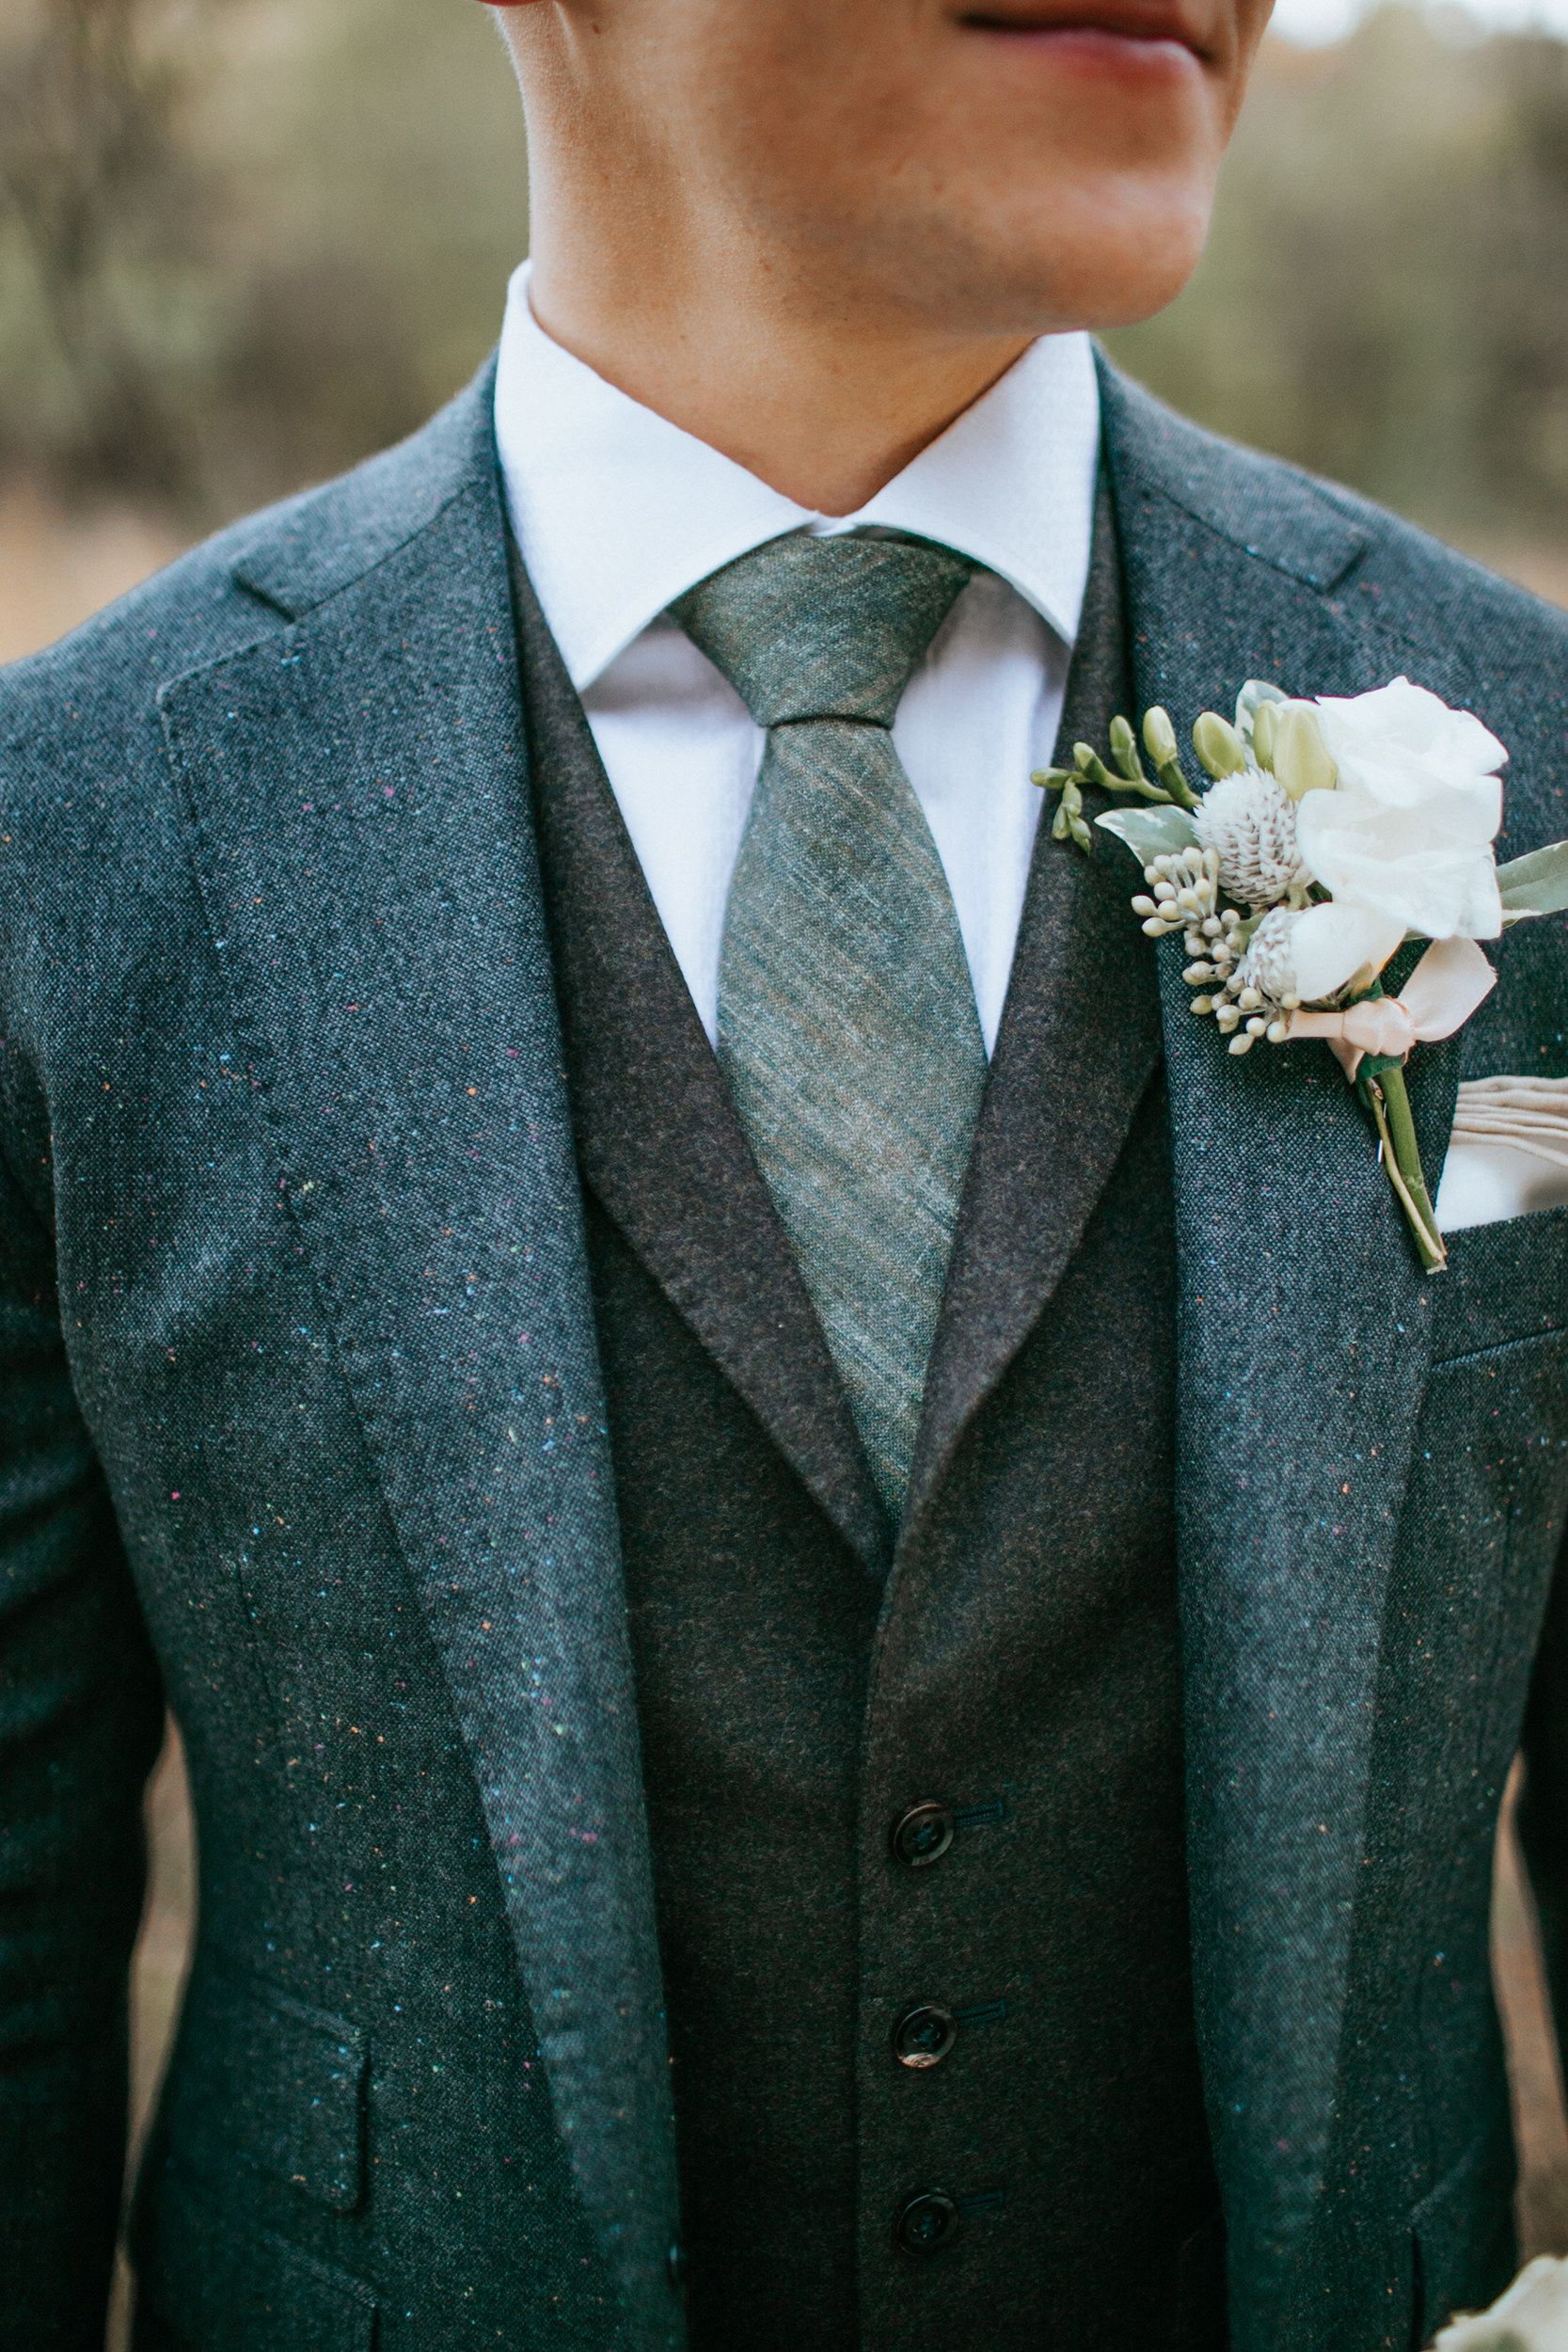 Daniel George Custom 3 Piece Wedding Suit In Donegal Tweed Wedding Suits Suits Wedding Men